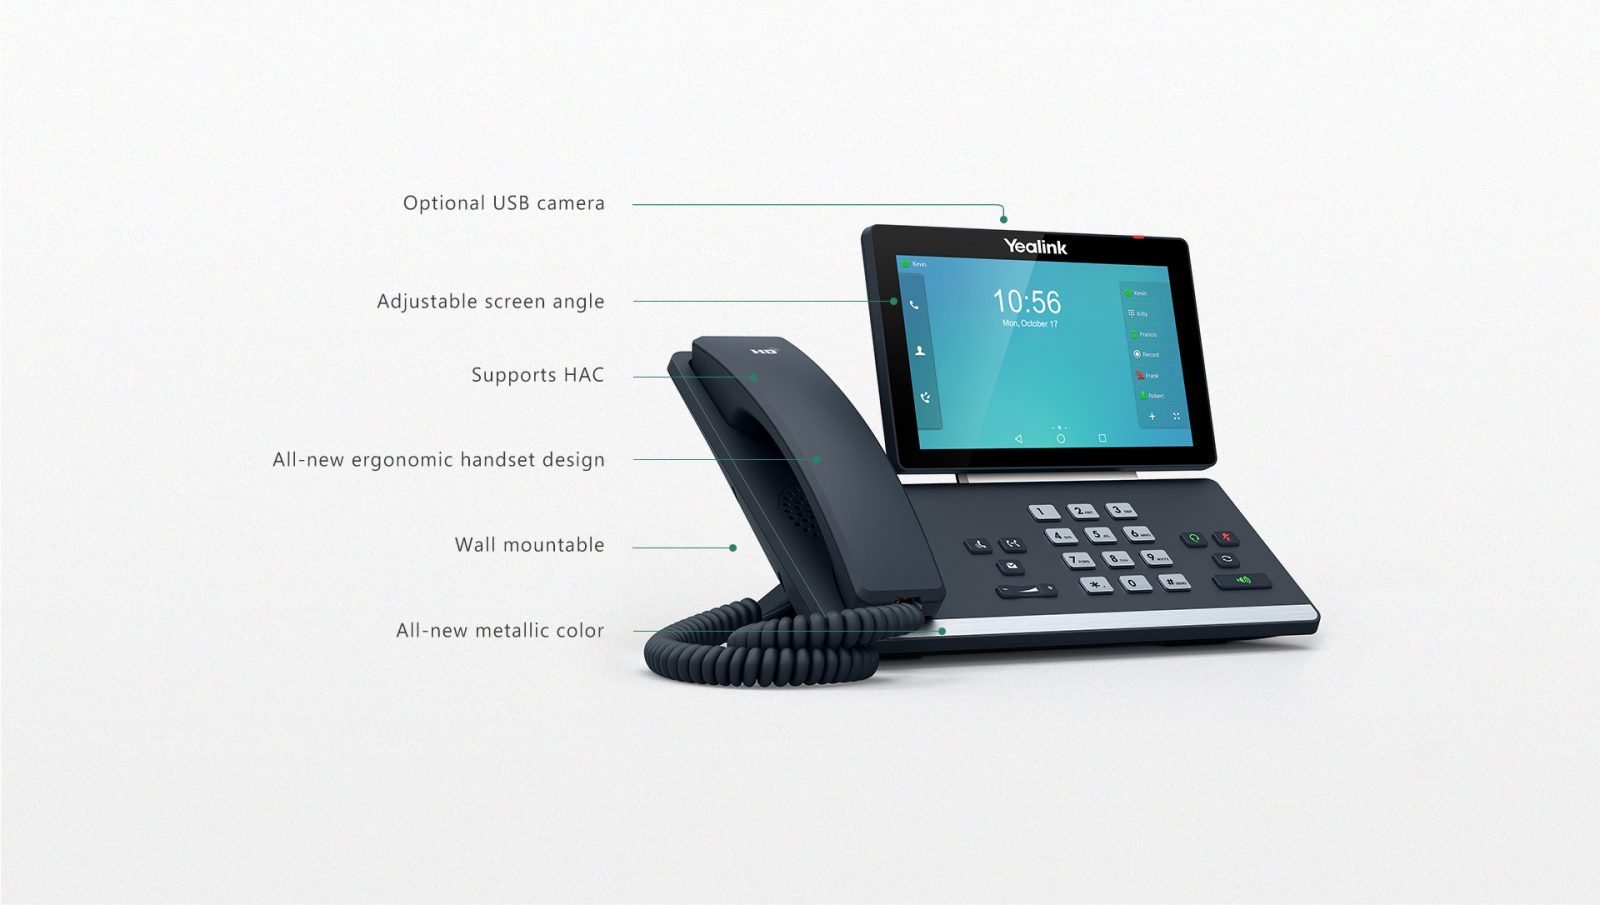 Yealink T58A Smart IP Phone